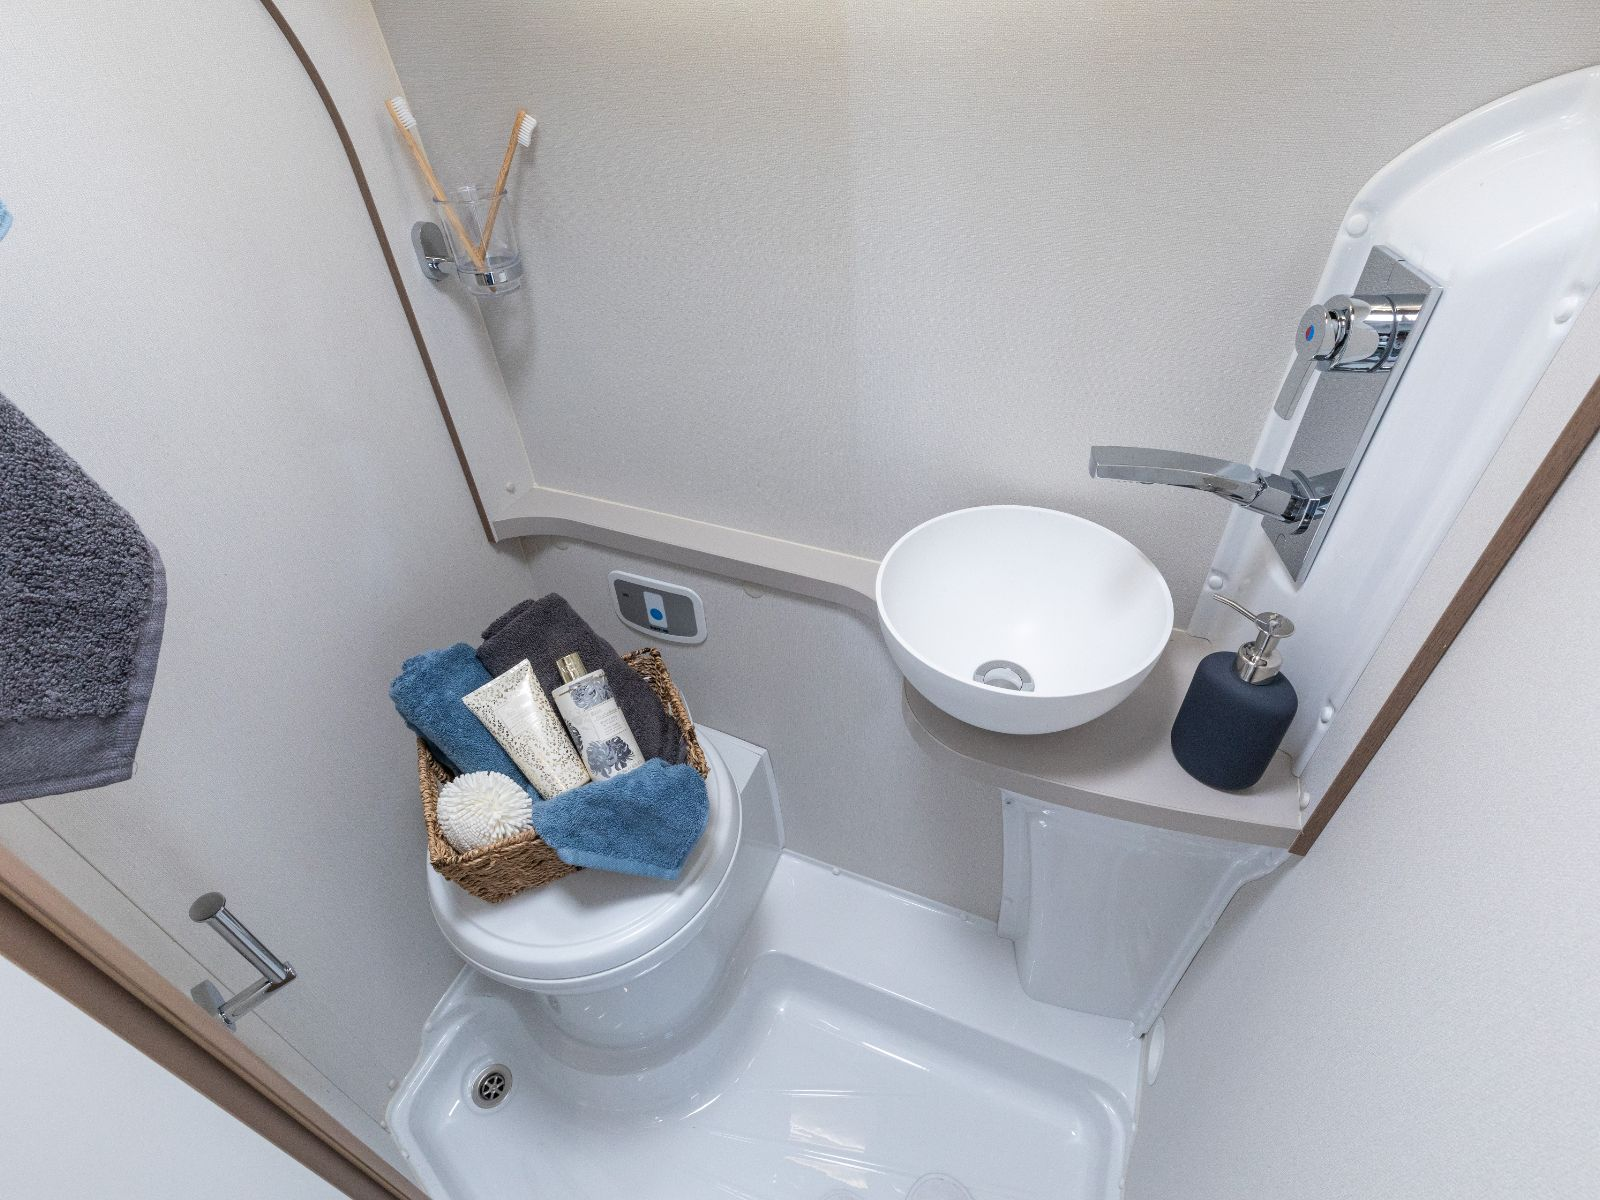 Bathroom layout with toilet, sink and shower controls'